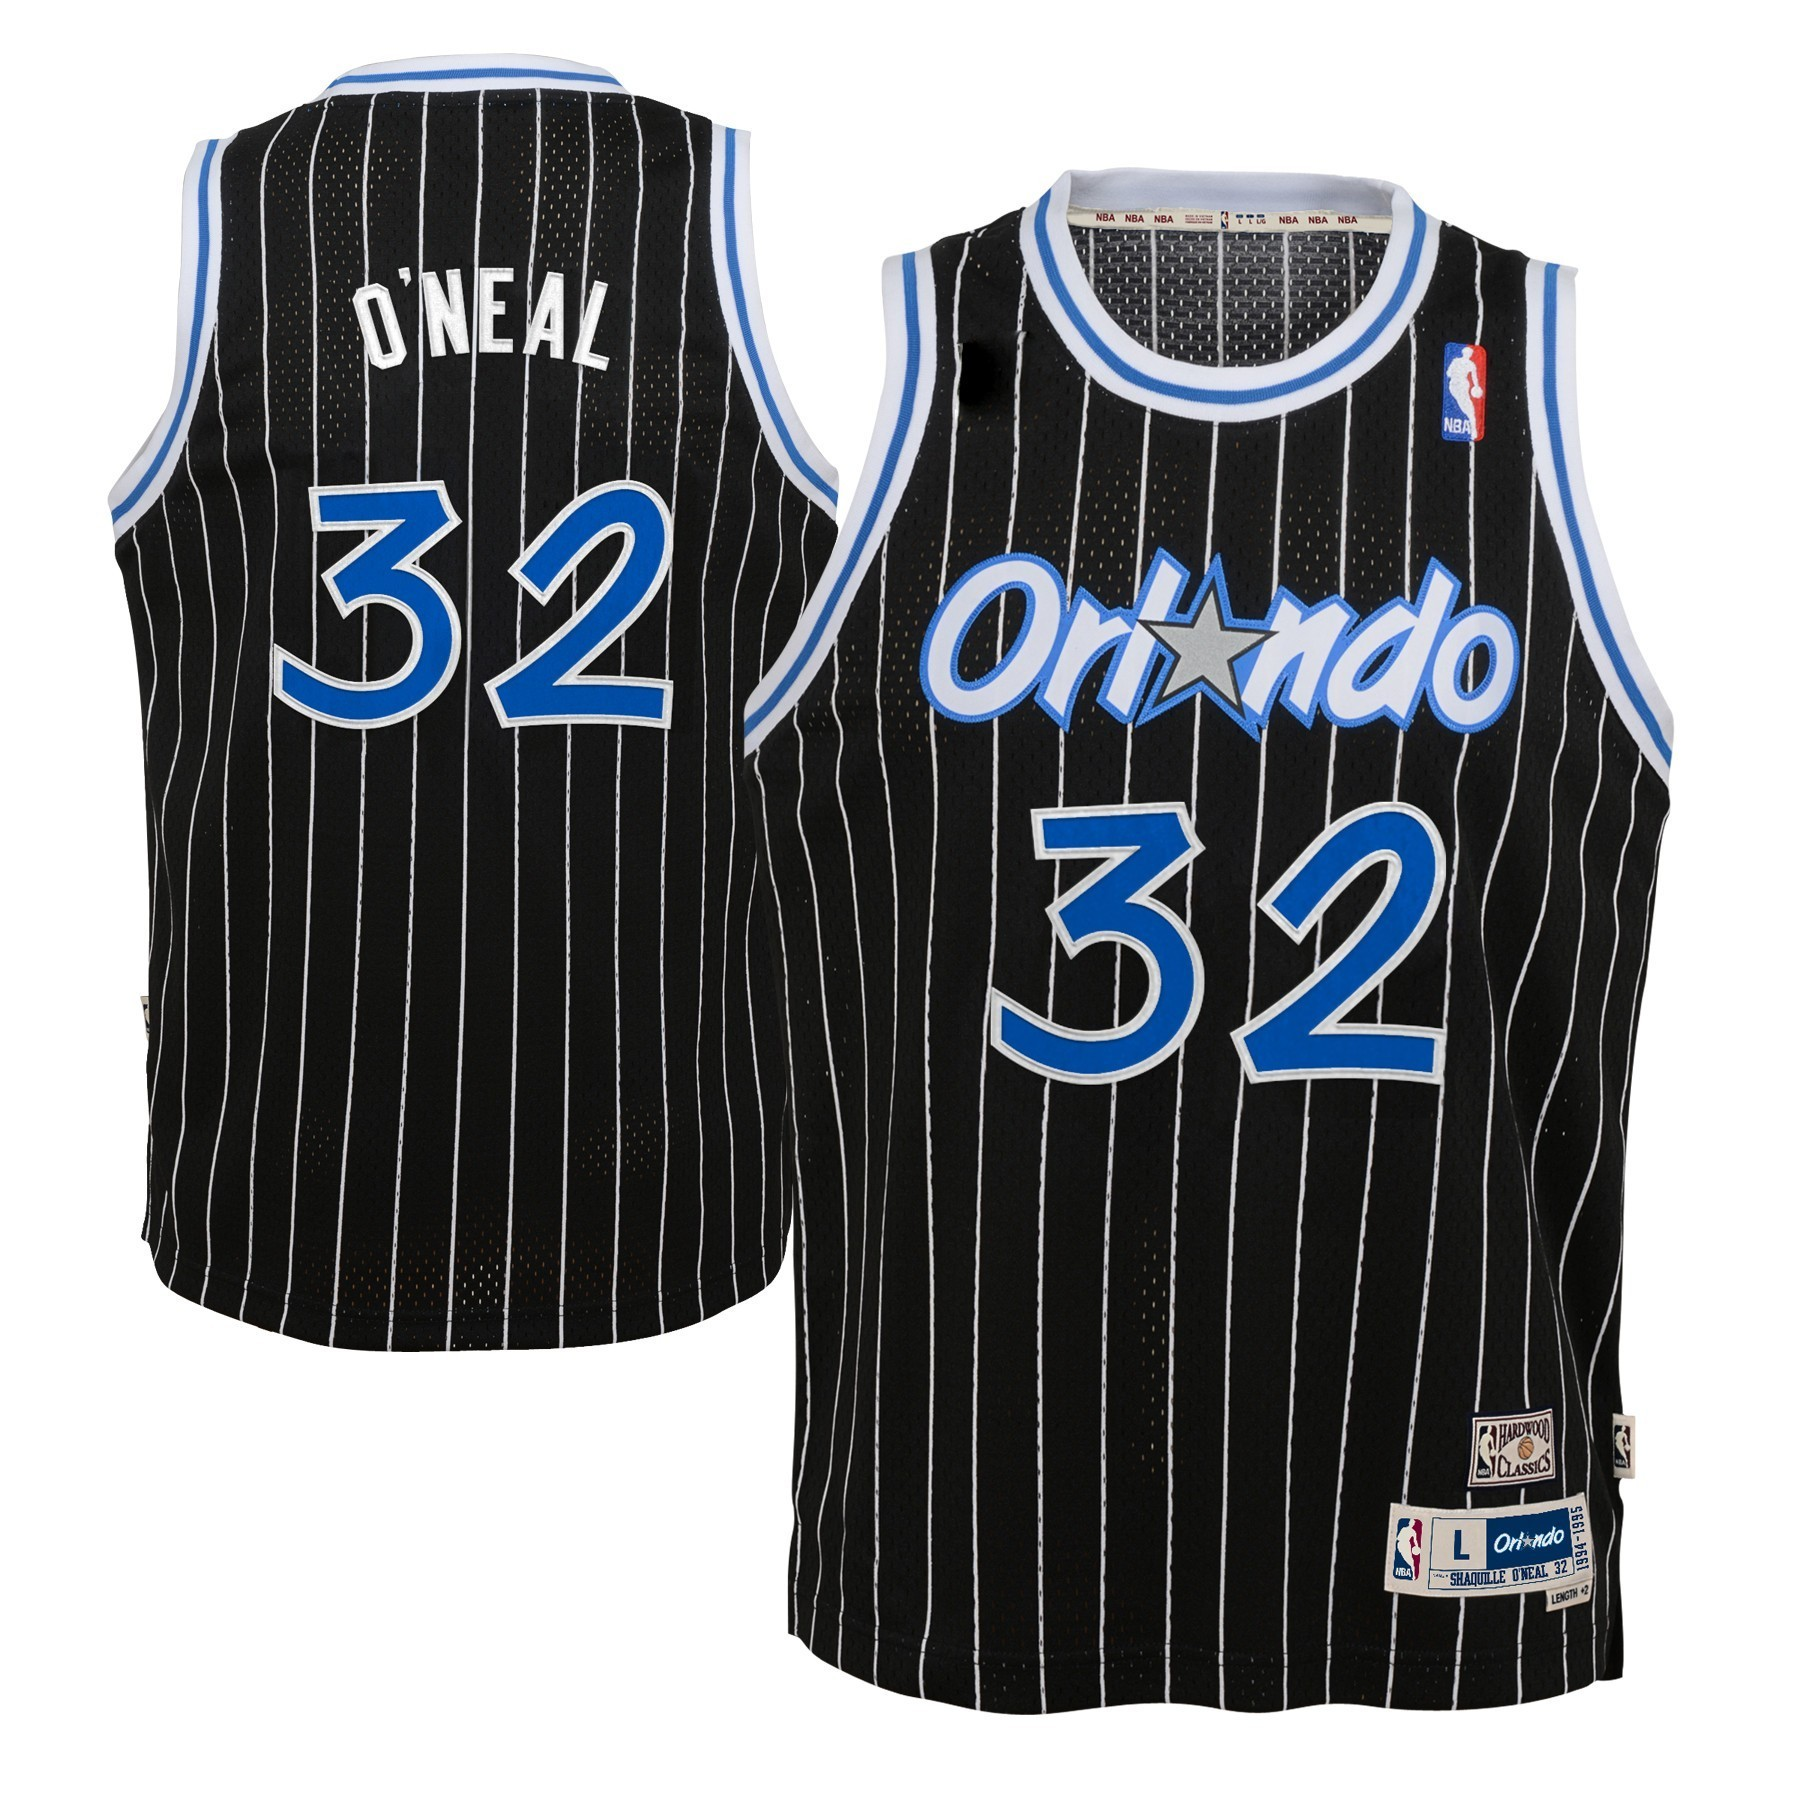 ec84f92e593 Details about Shaquille O'Neal Orlando Magic NBA Youth Throwback Swingman  Jersey - Black